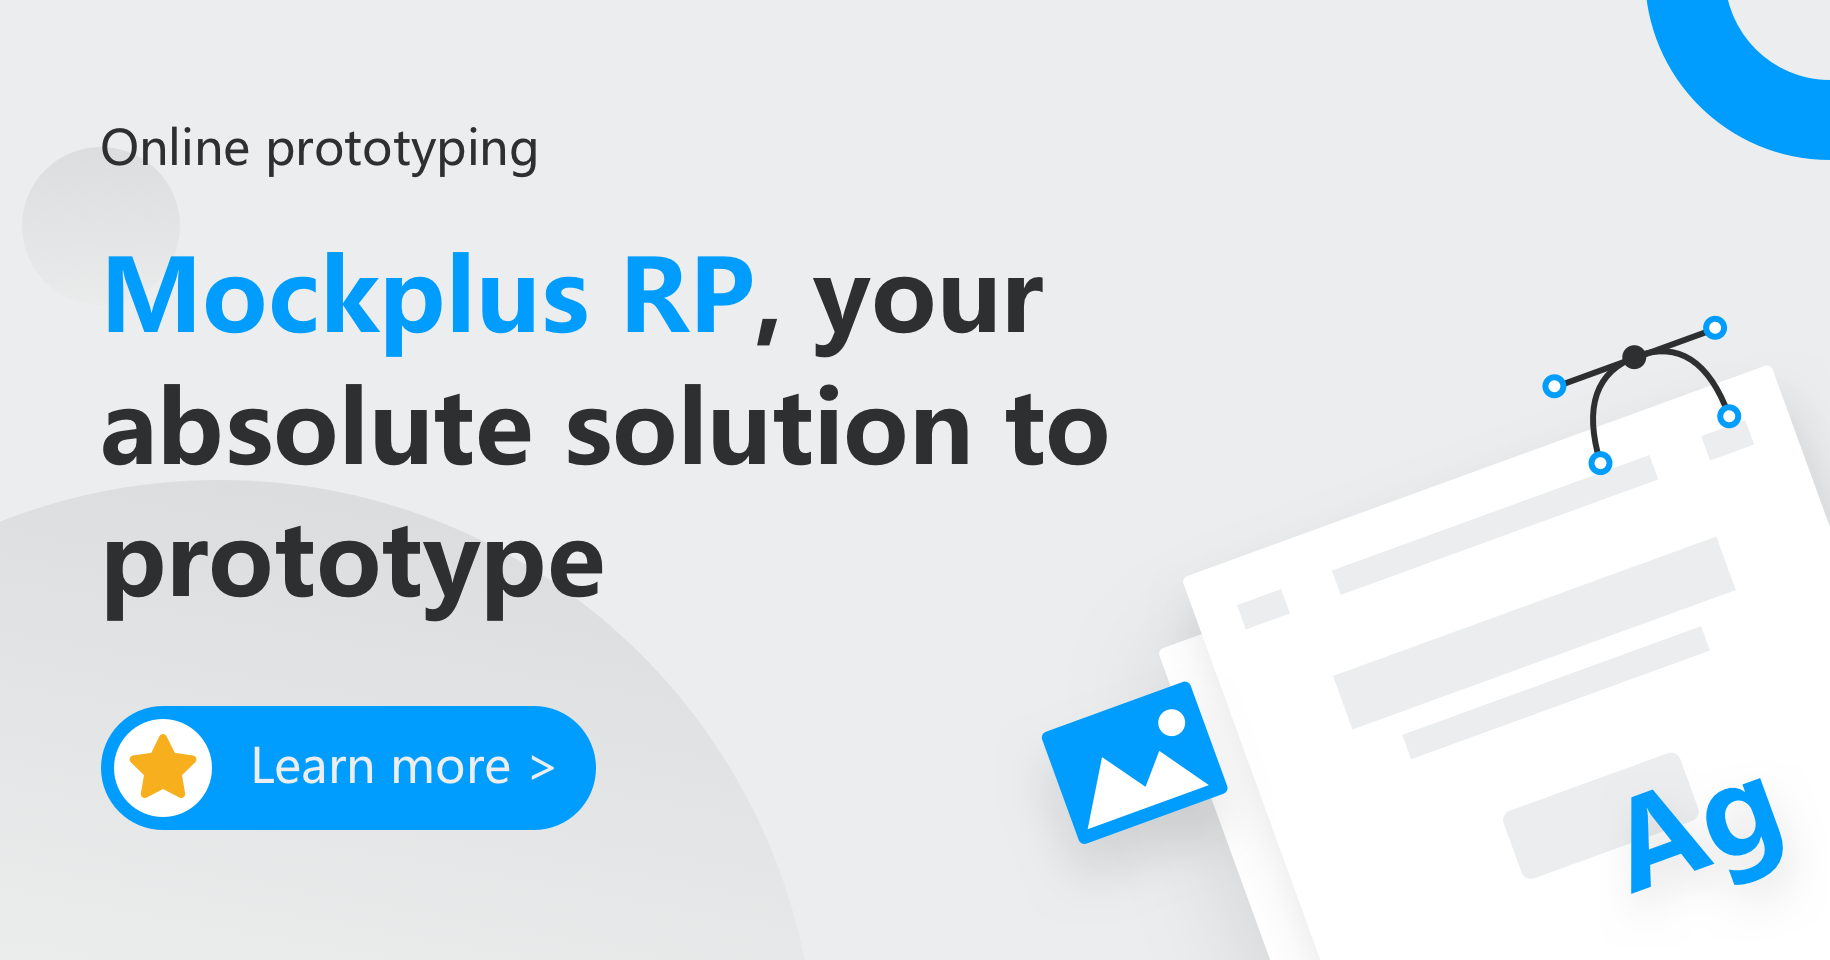 MockplusRP, your absolute solution to prototype